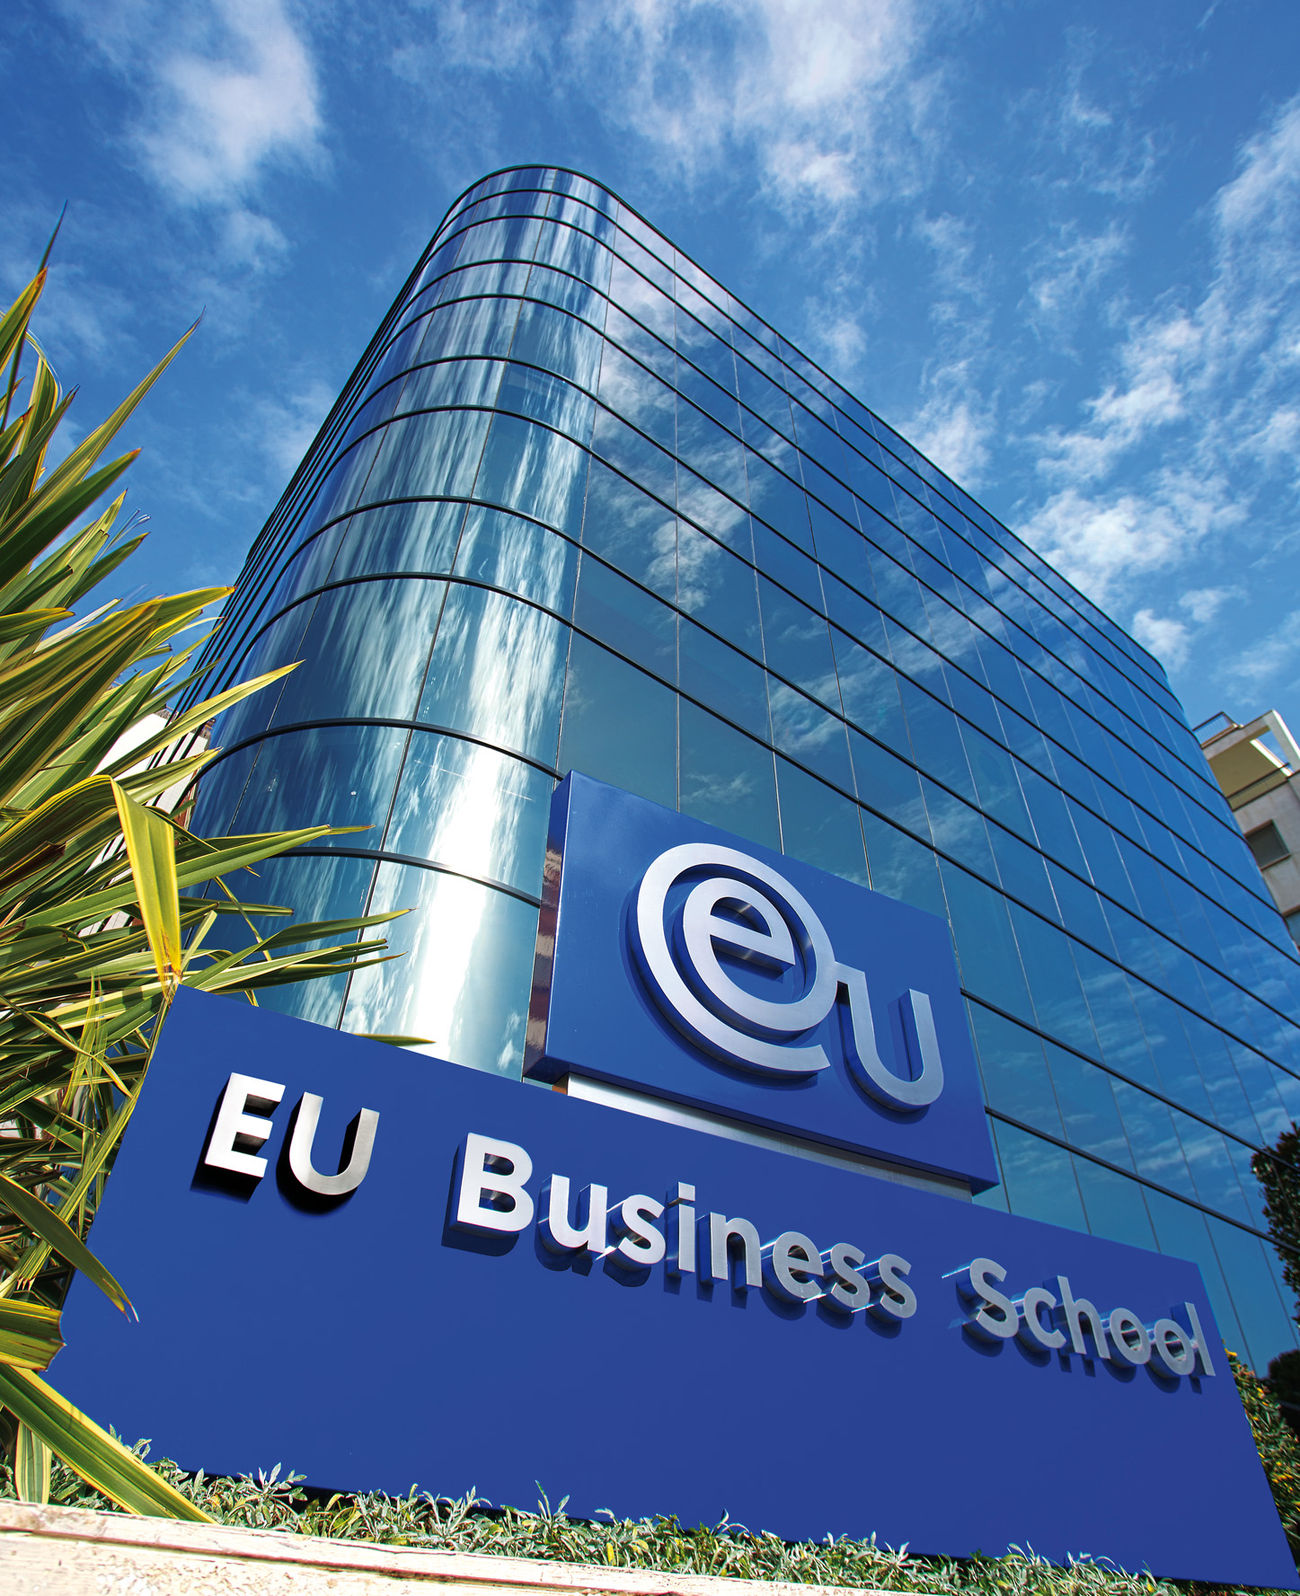 EU Business School Barcelona